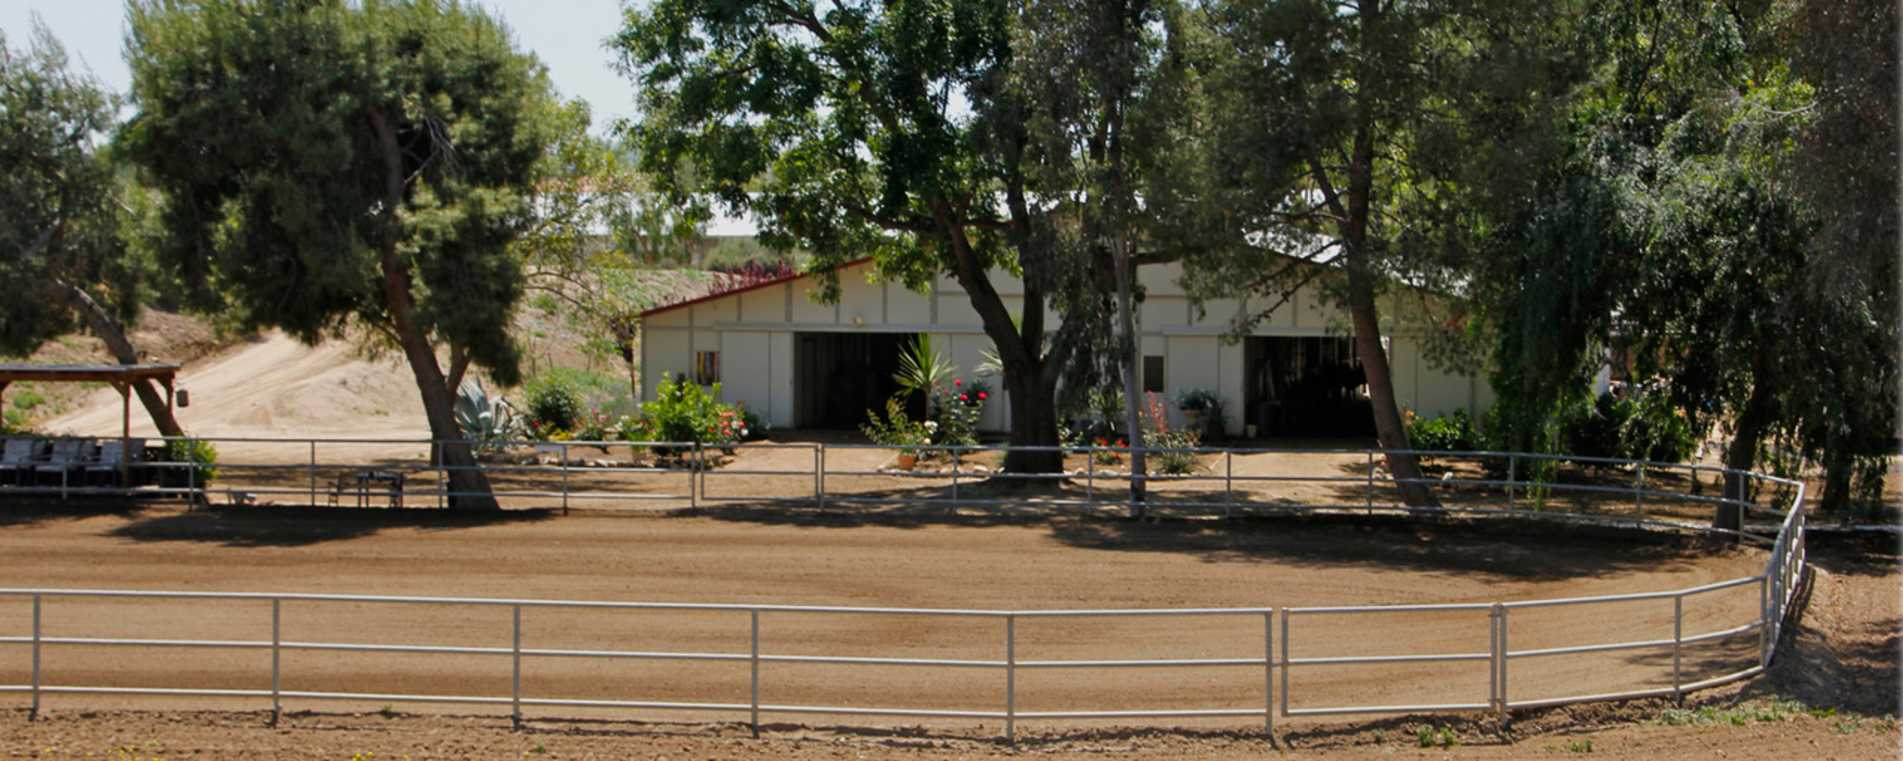 Green Acres Ranch Inc. - Temecula